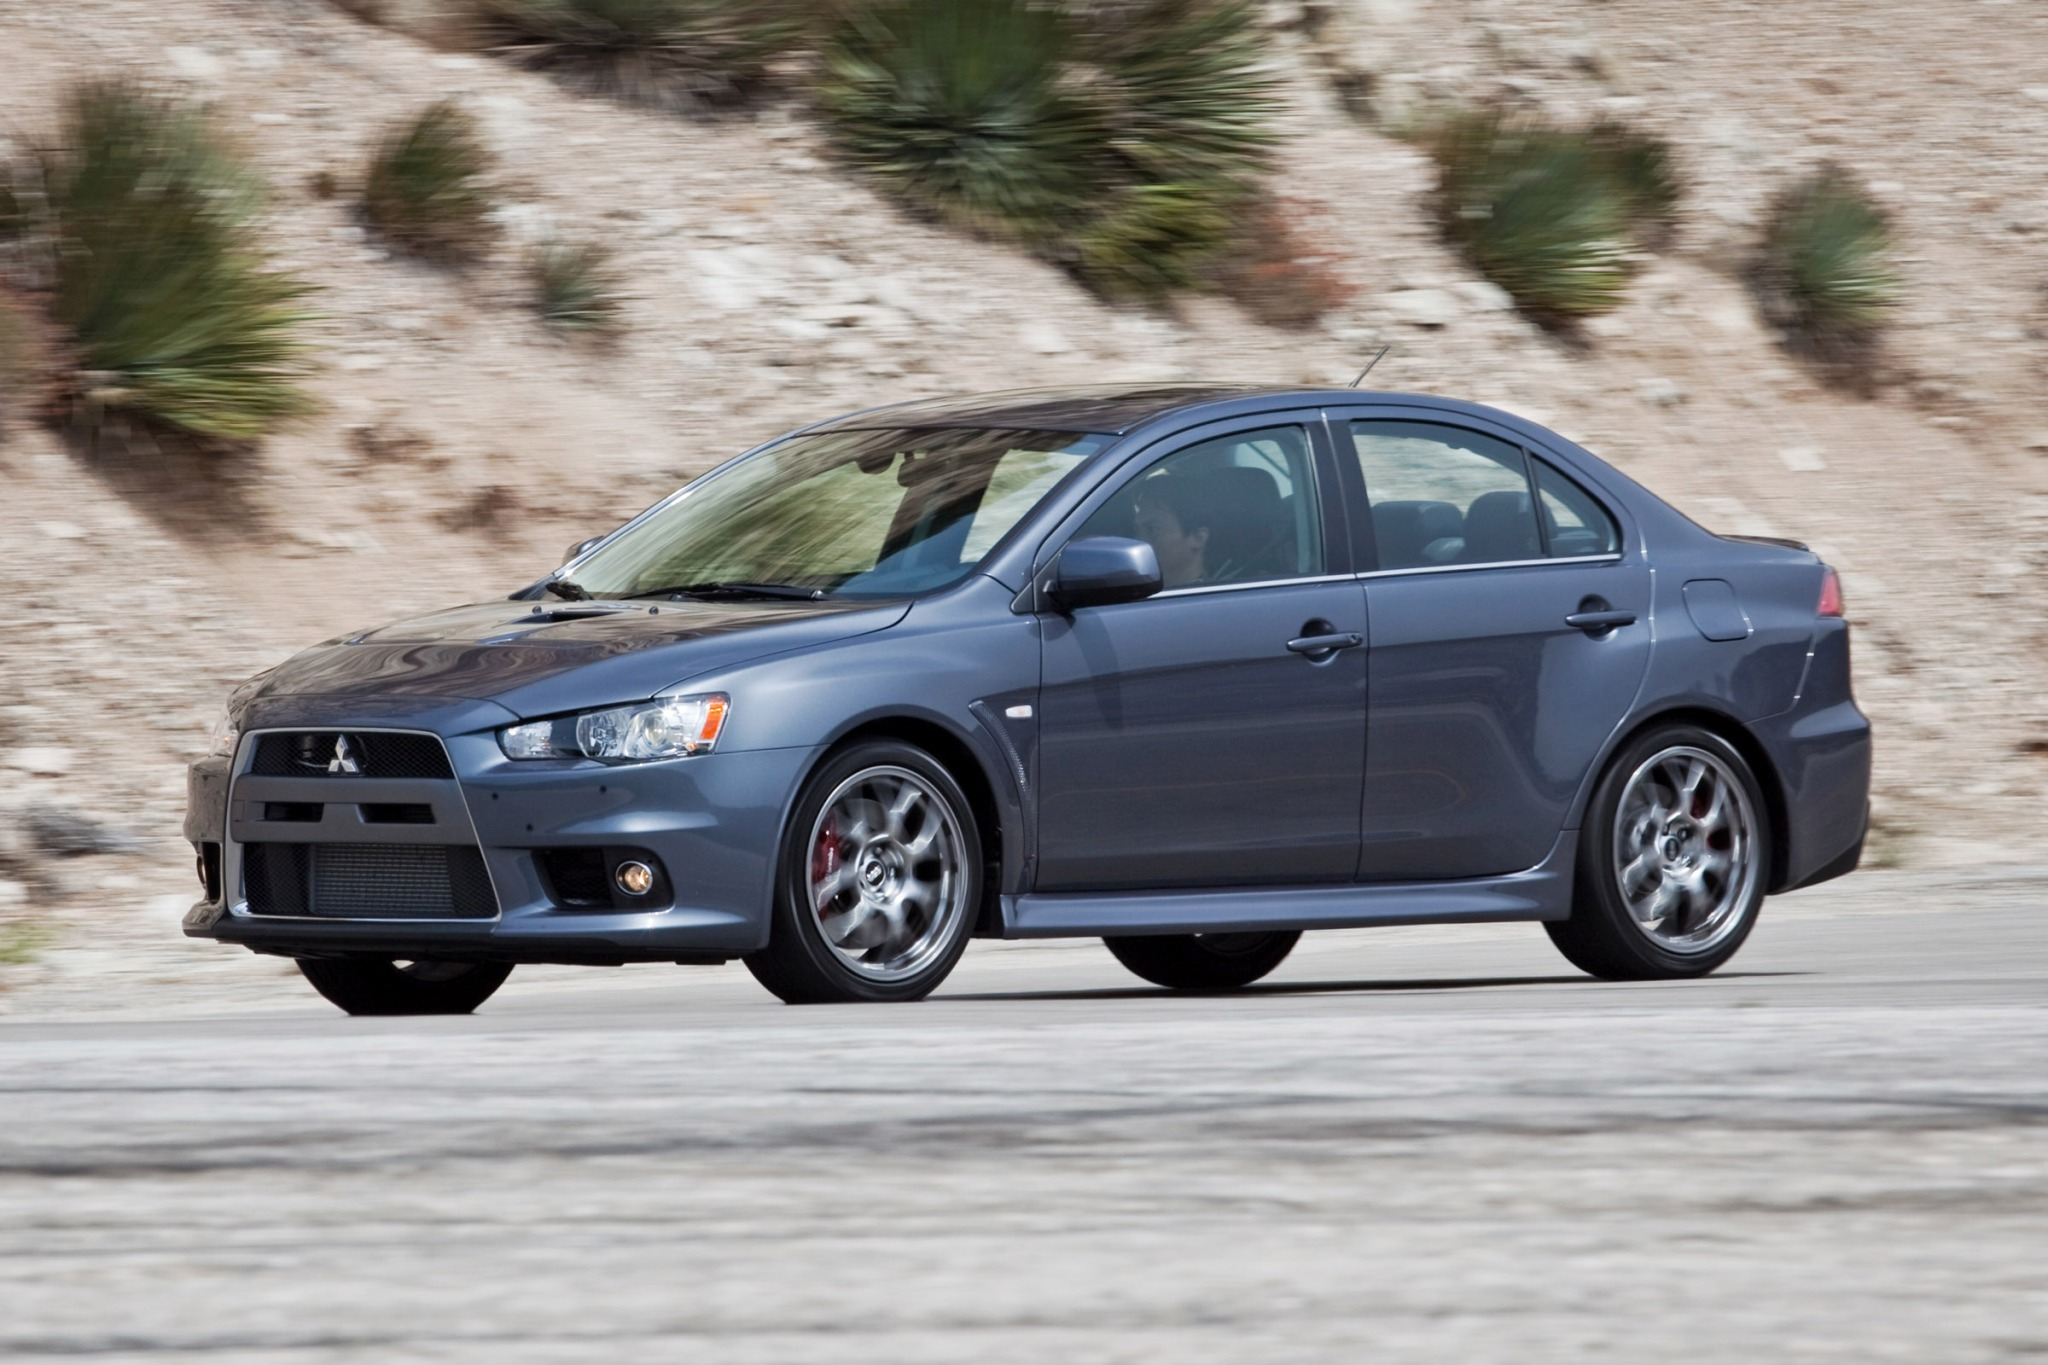 above evolution mitsubishi drivers updated news lancer motor trend for side year sale its last mr